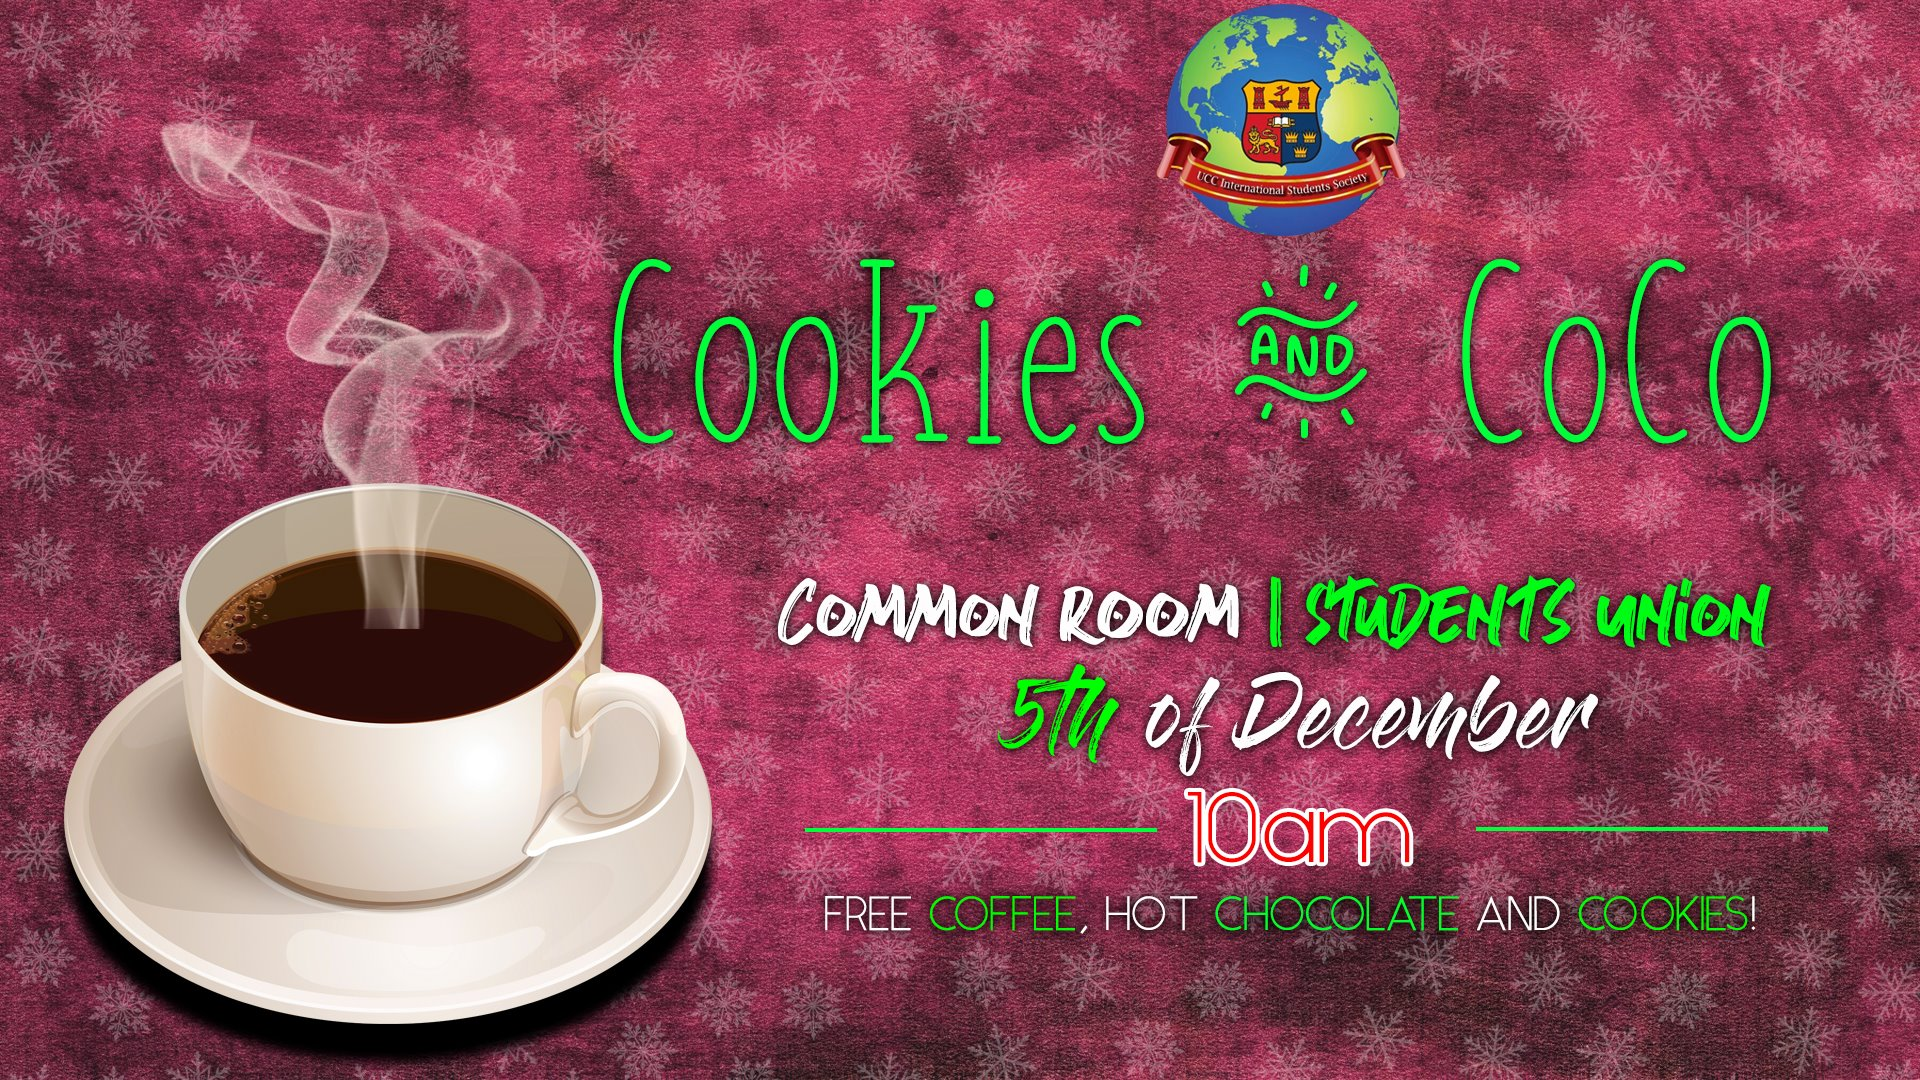 Cookies and Coco- 5th December